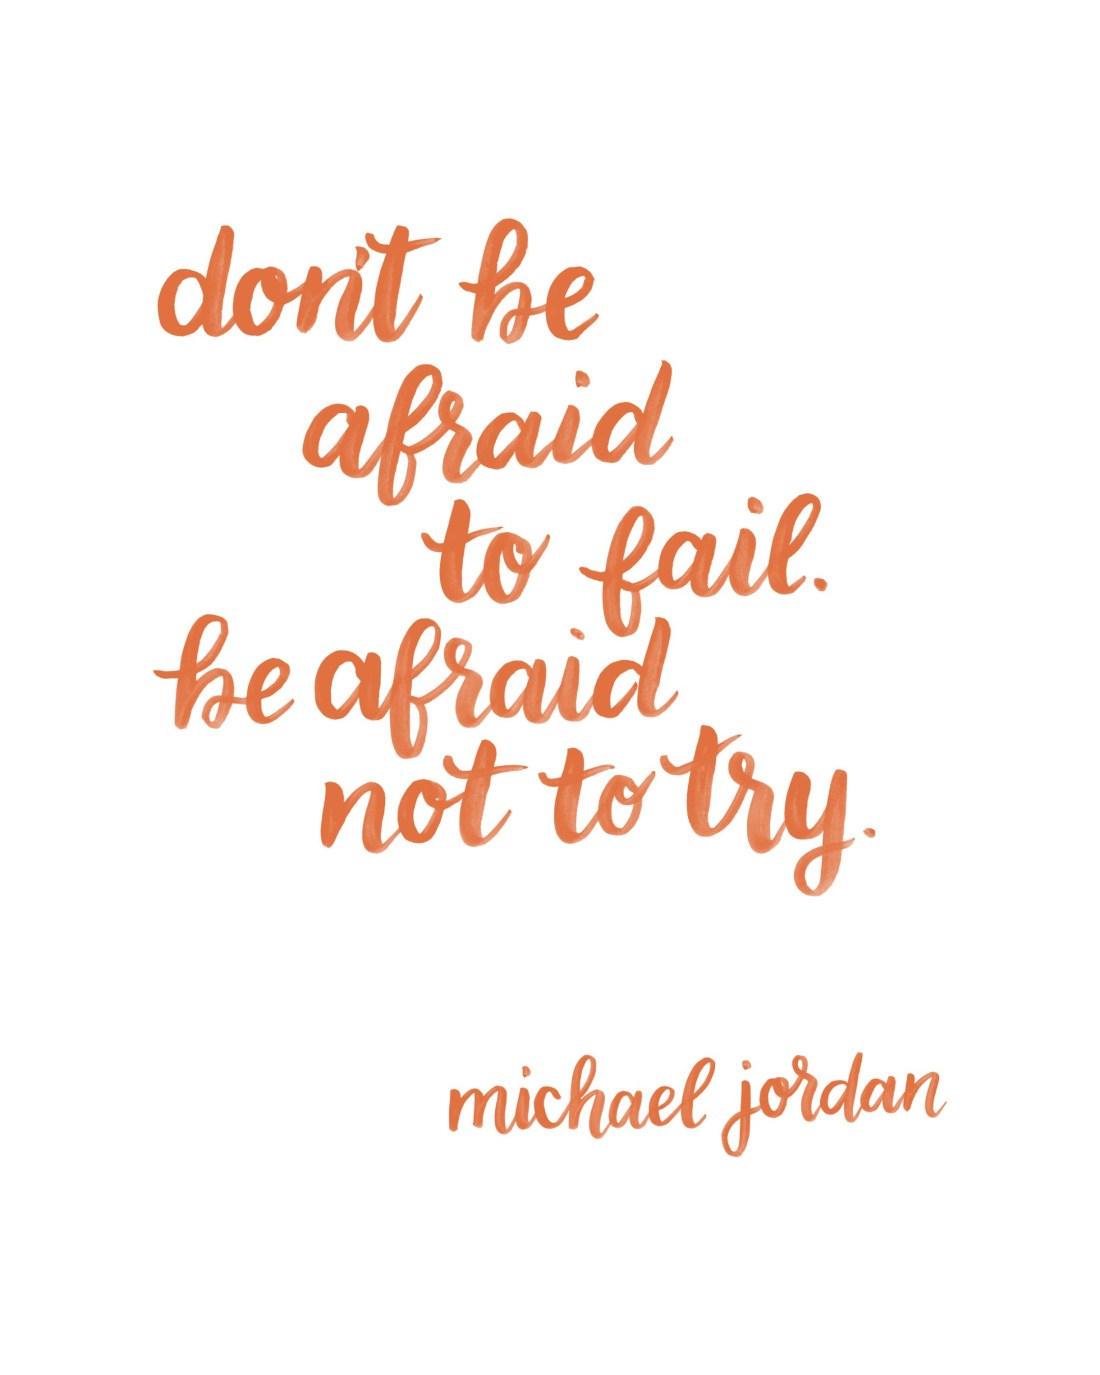 jordan-be-afraid-not-to-try-8x10-orange